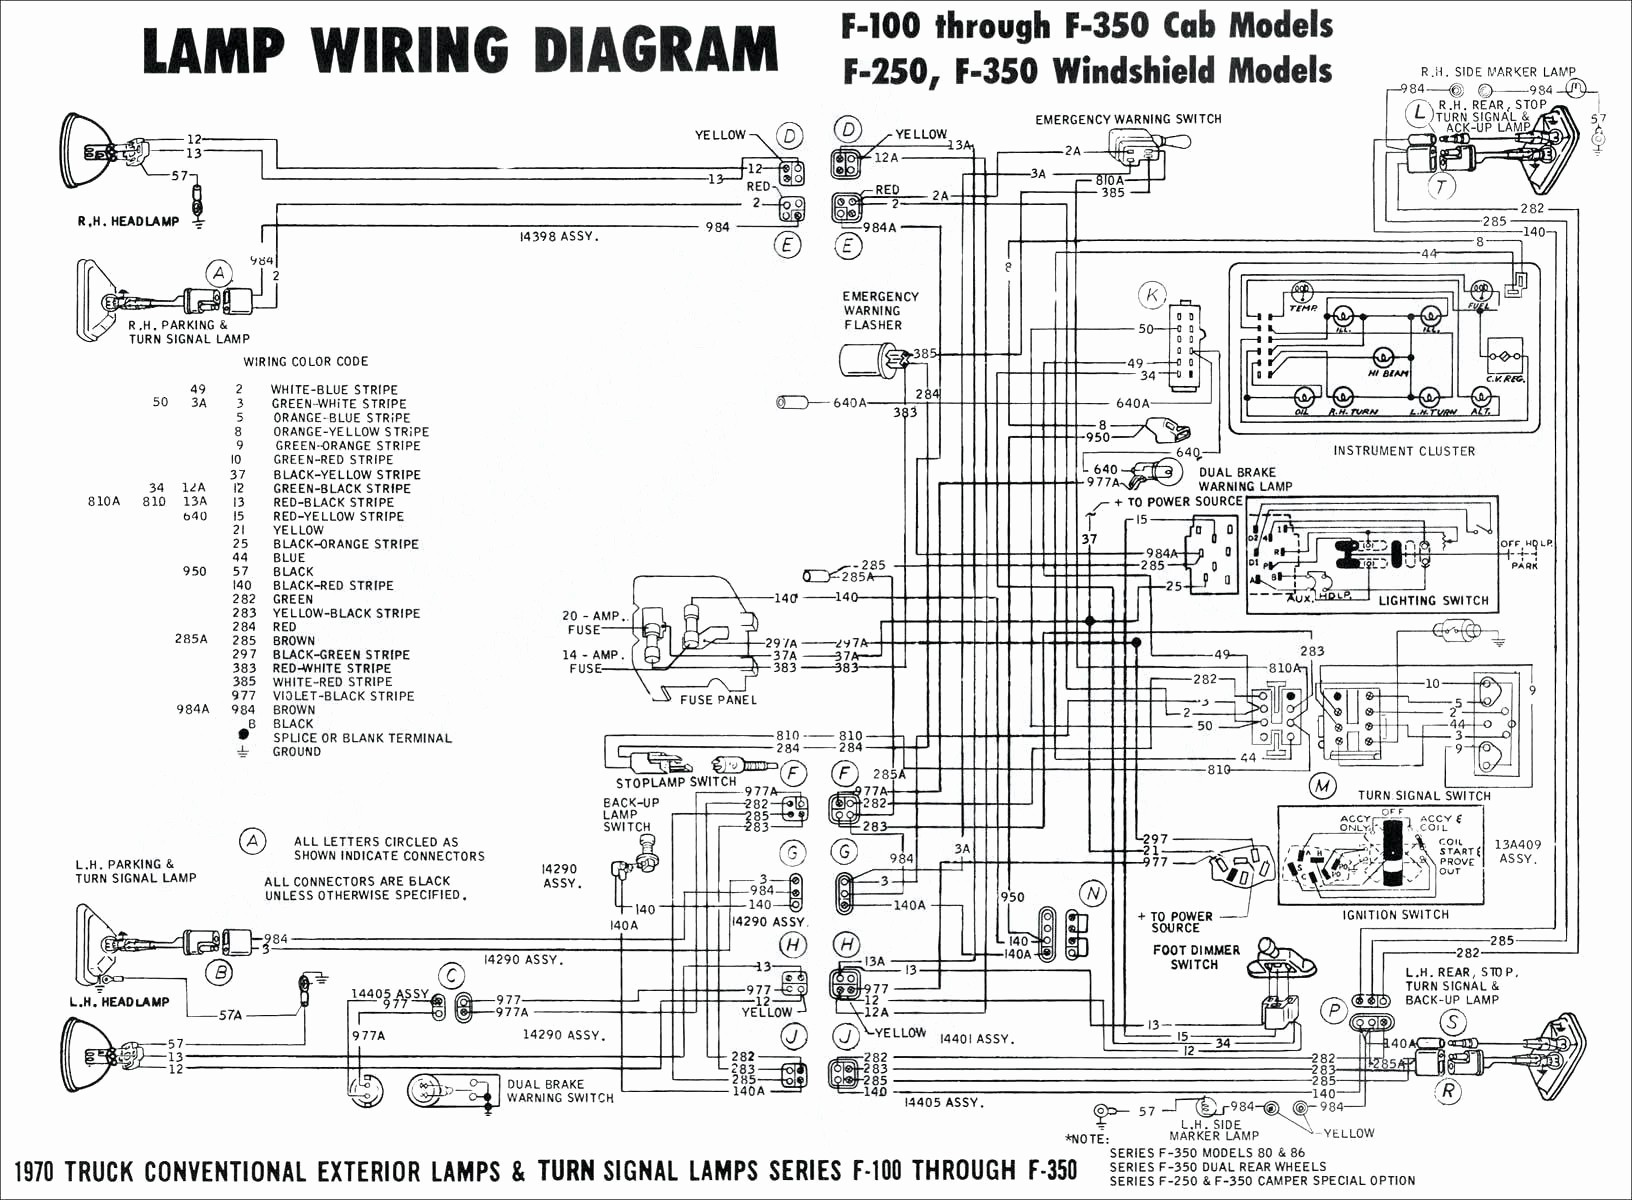 Sumas Sm6868 Wiring Diagram And Schematics 2007 Chevy Silverado Tail Light 1500